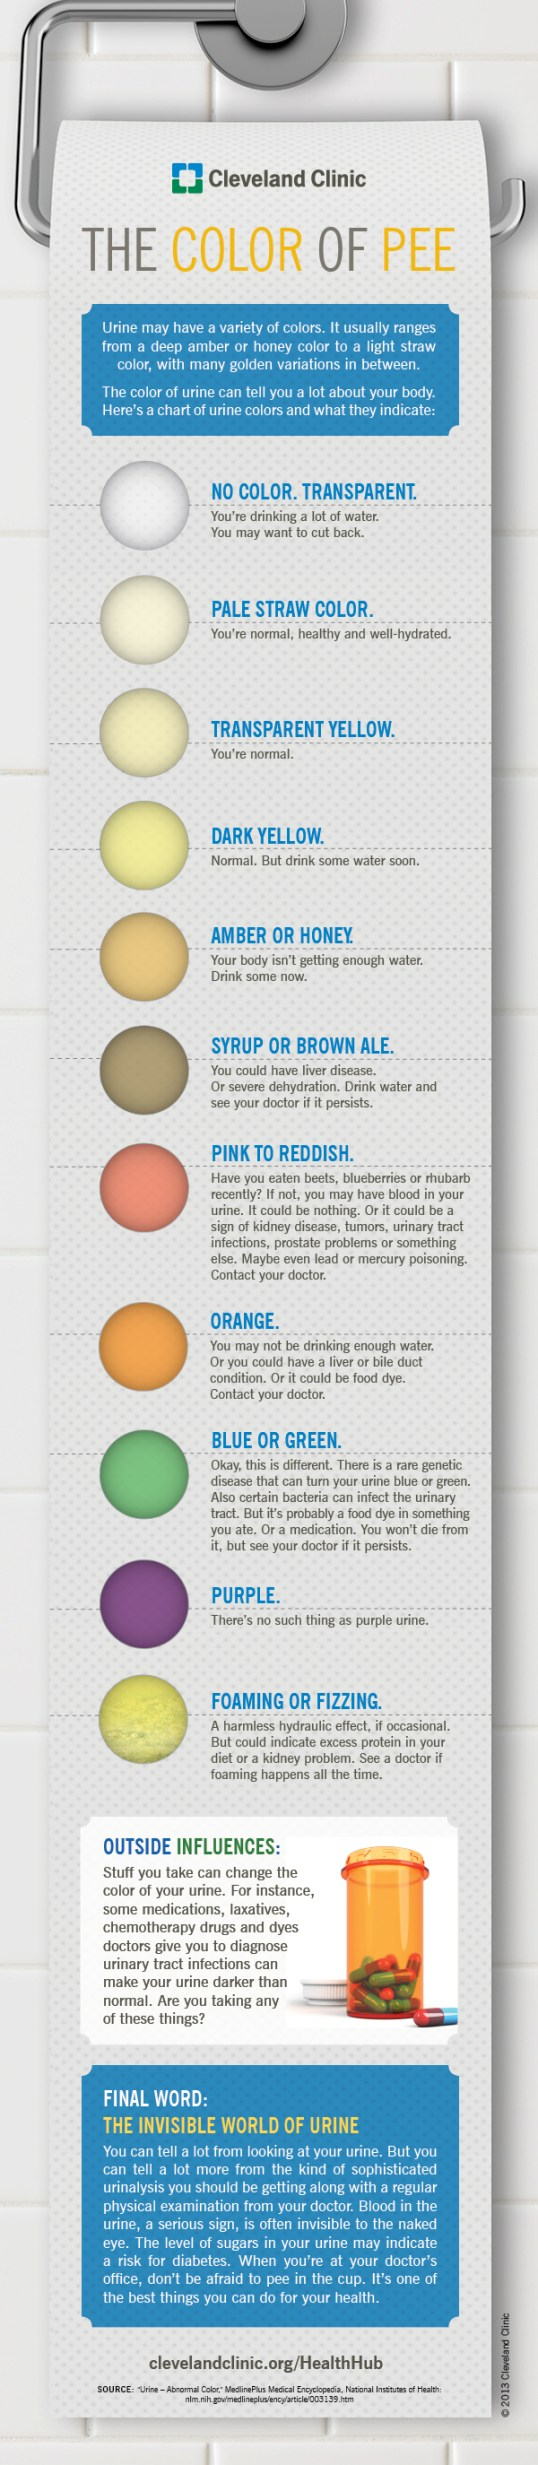 The-Color-of-Pee-Infographic